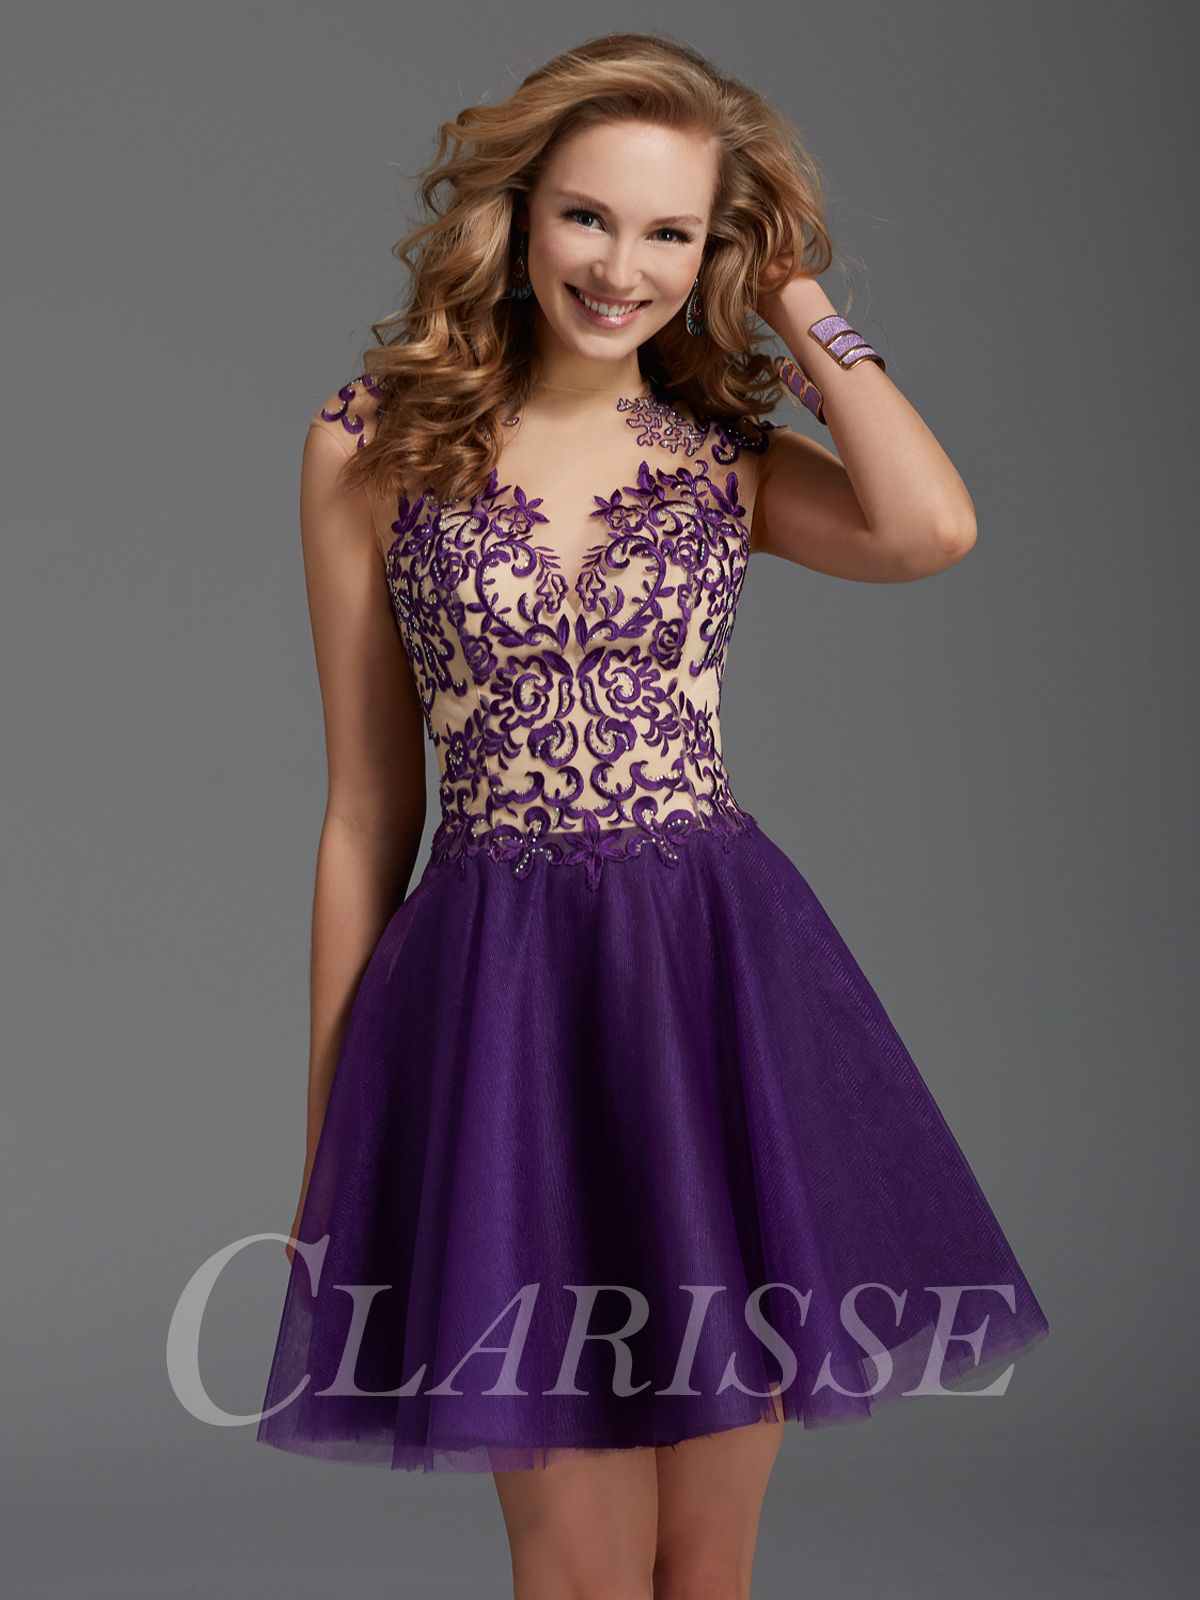 Clarisse Short Formal Dress 2918 | Modest homecoming dresses ...